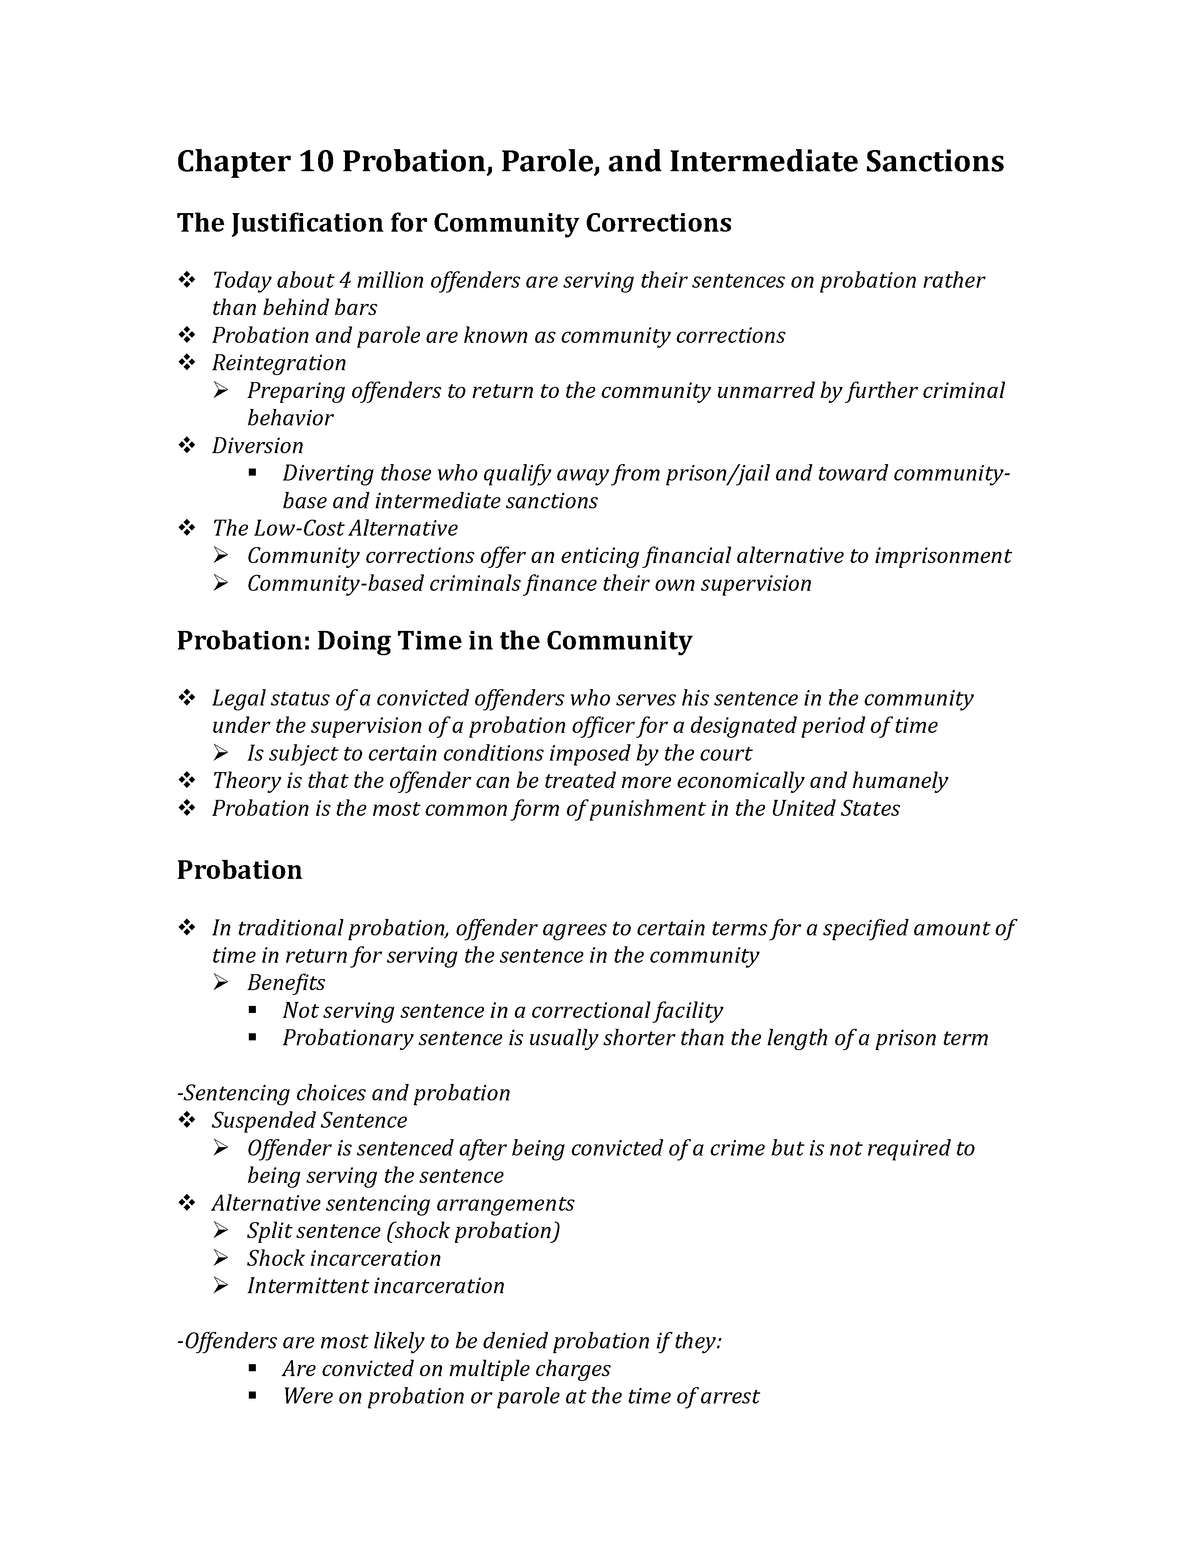 CJUS 2100 Notes - Chapter 10 Probation, Parole, and